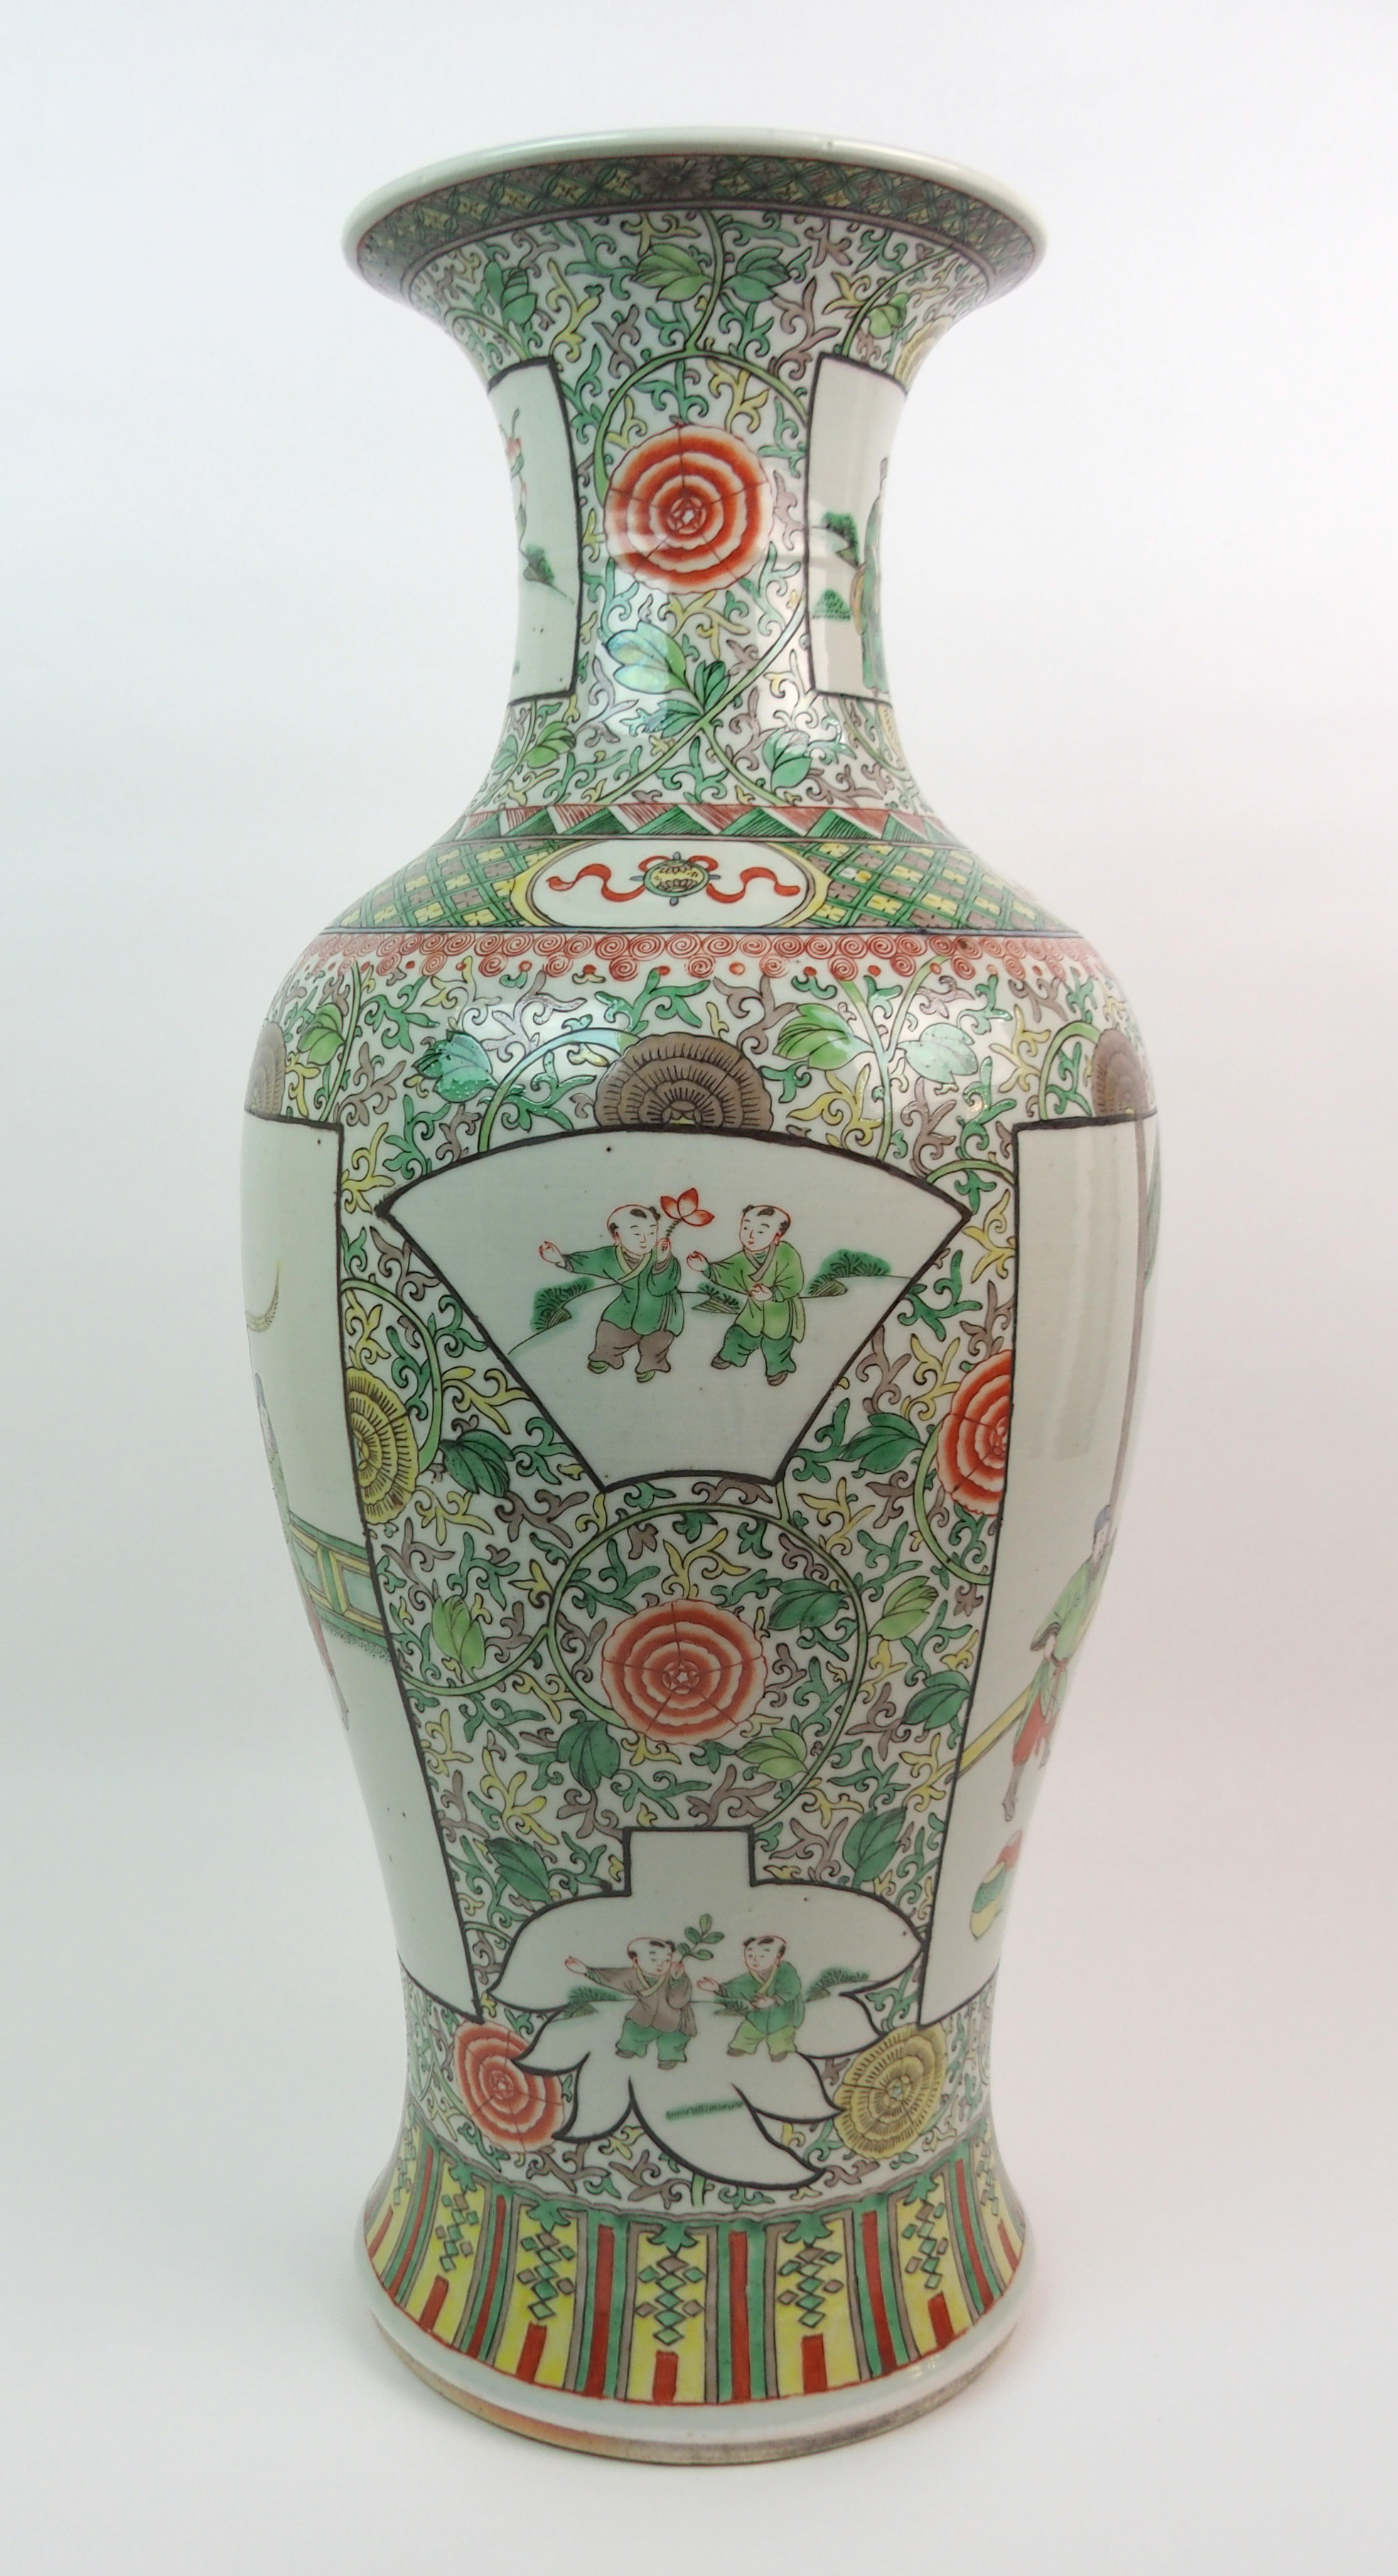 A CHINESE FAMILLE VERTE LARGE BALUSTER VASE painted with panels of figures surrounded by flowers and - Image 8 of 10